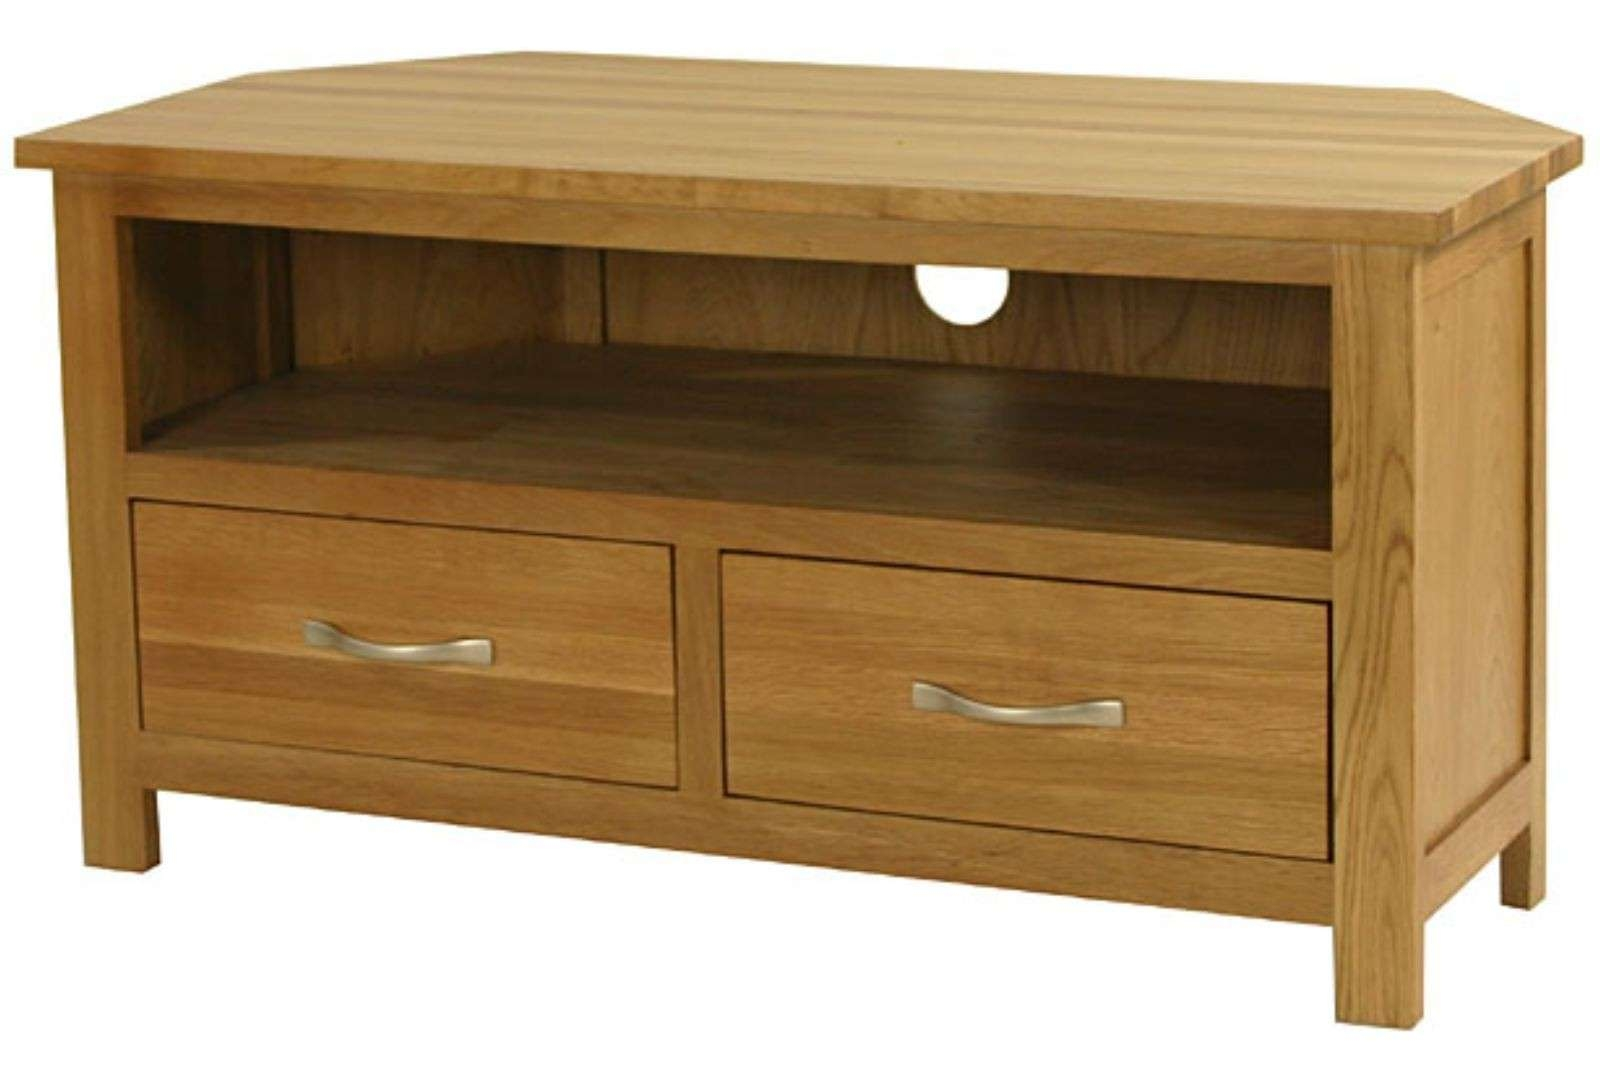 Nursing Home Furniture Corner Tv Unit From Hill & Hill Design With Regard To Tv Cabinets Corner Units (View 13 of 20)